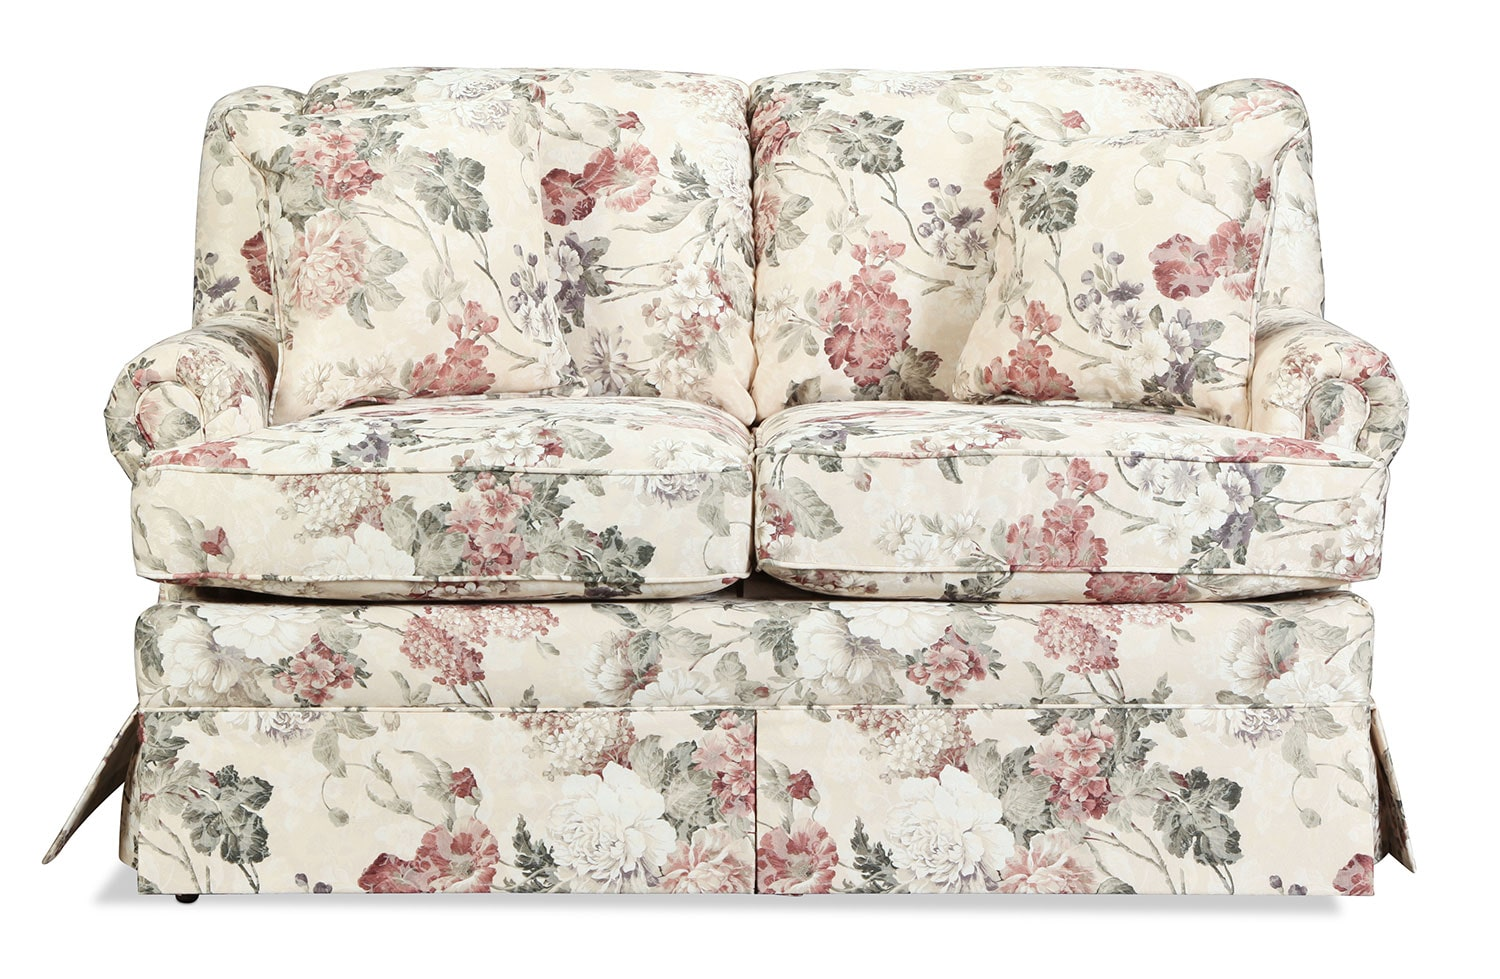 Sofia Loveseat - Floral